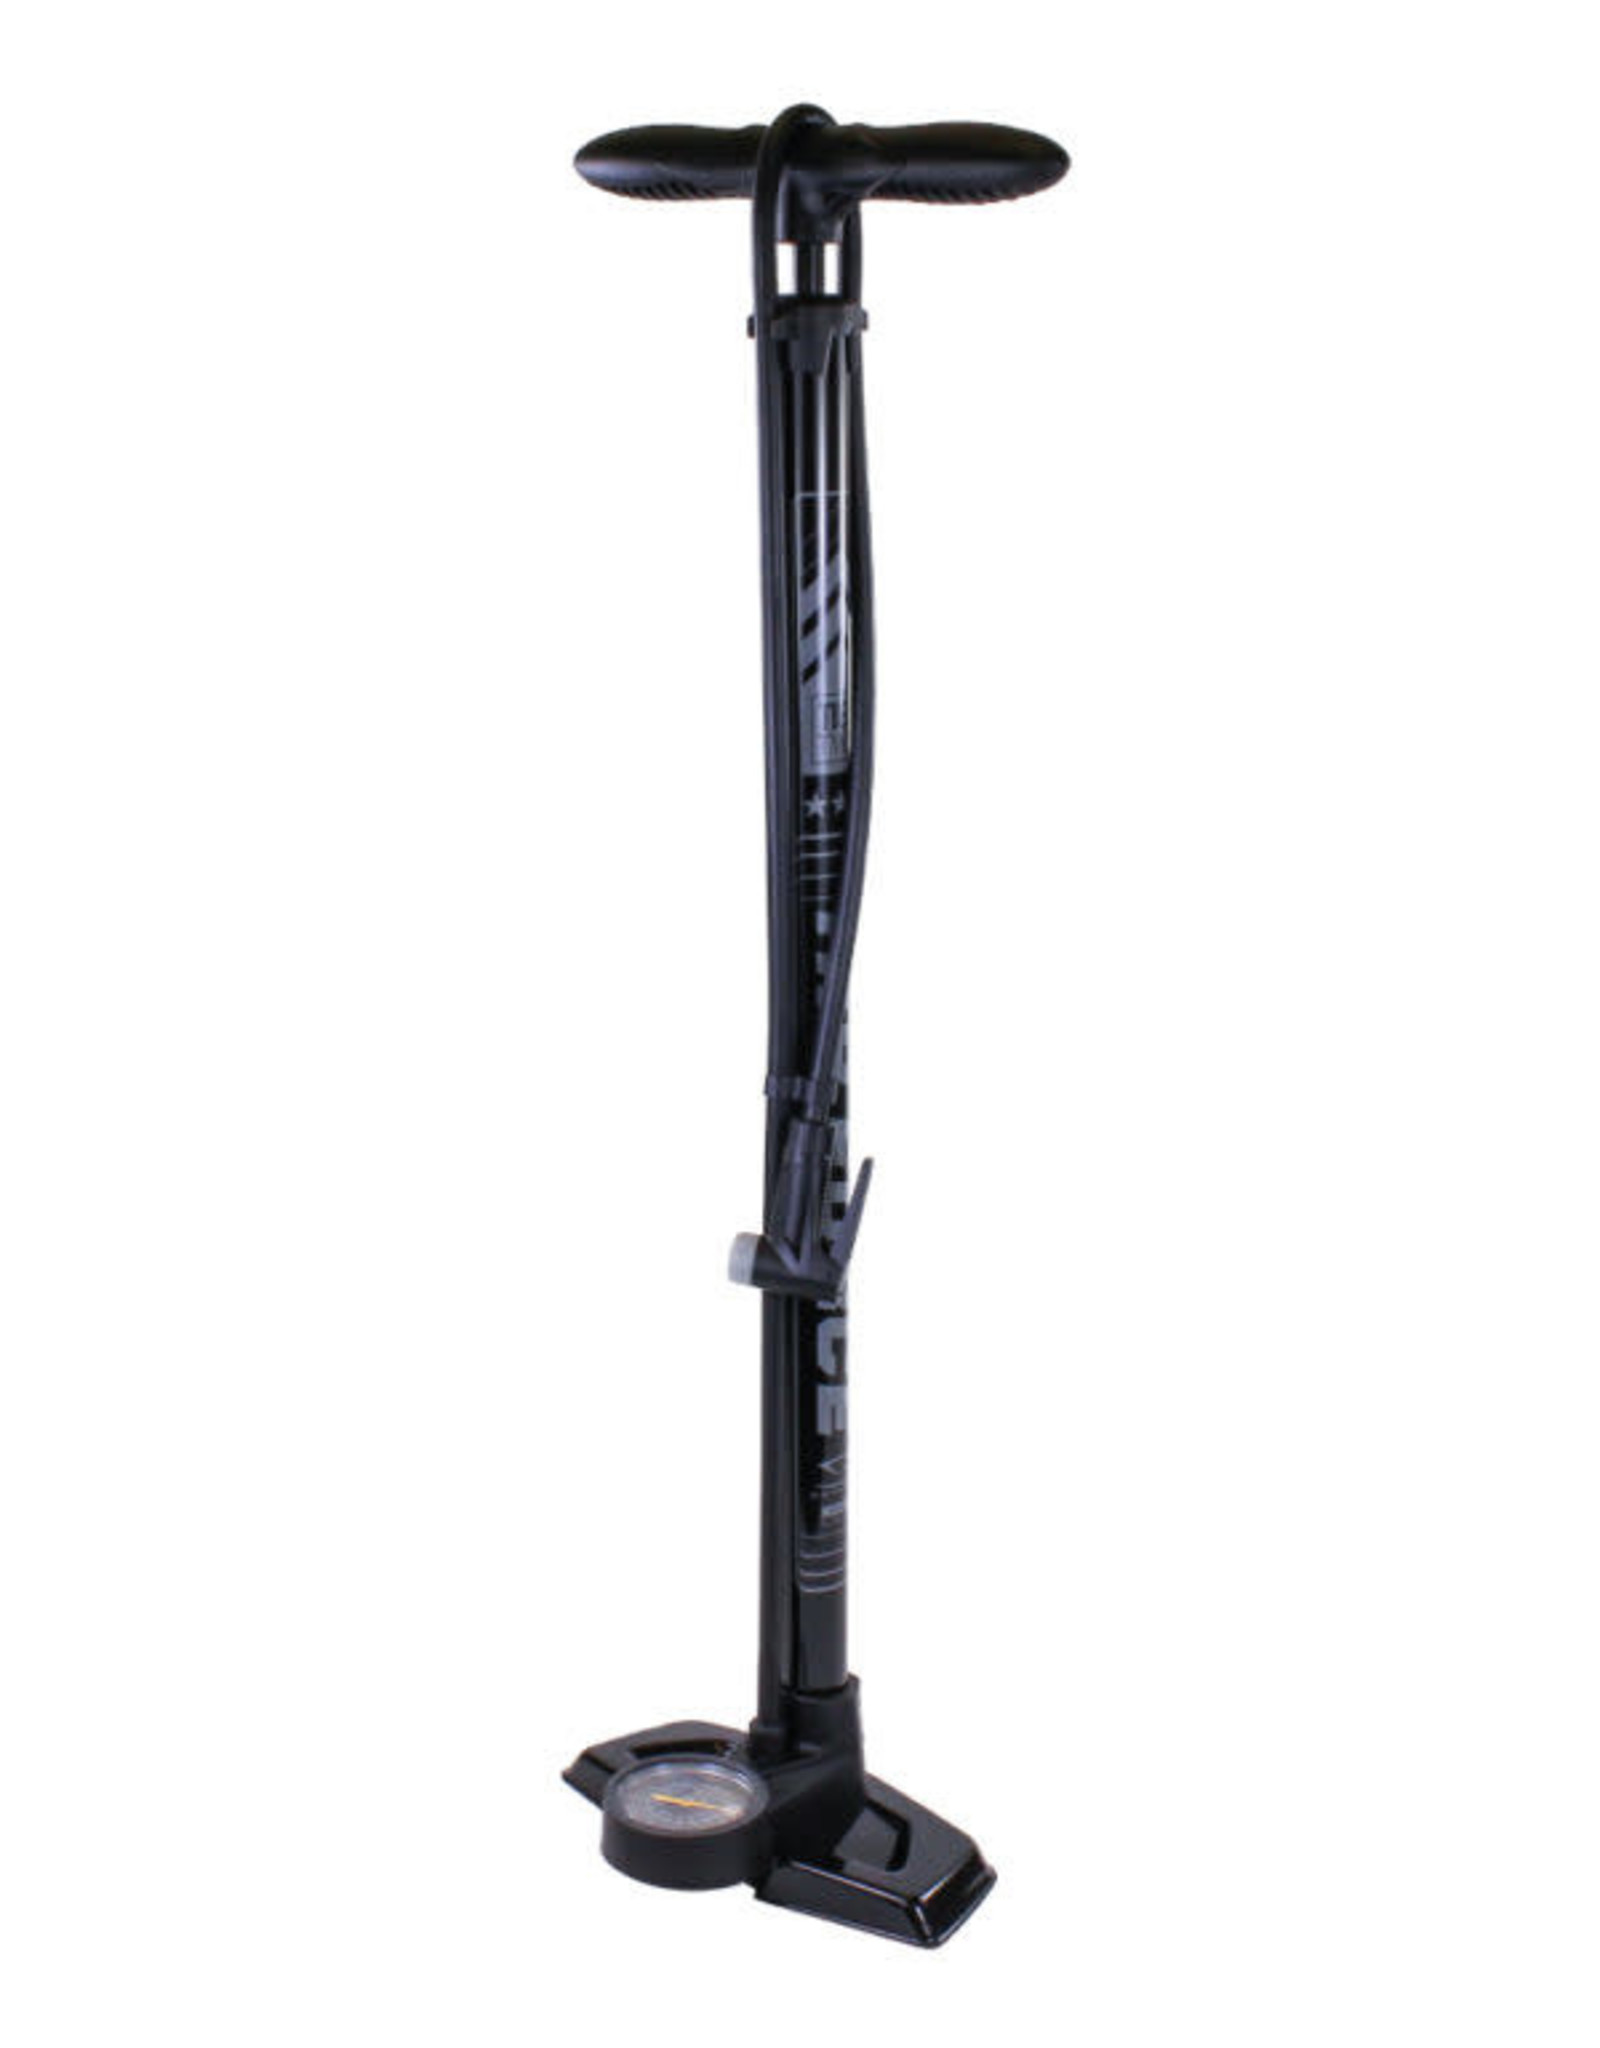 SERFAS Serfas Air Force Tier 2 Floor Pump